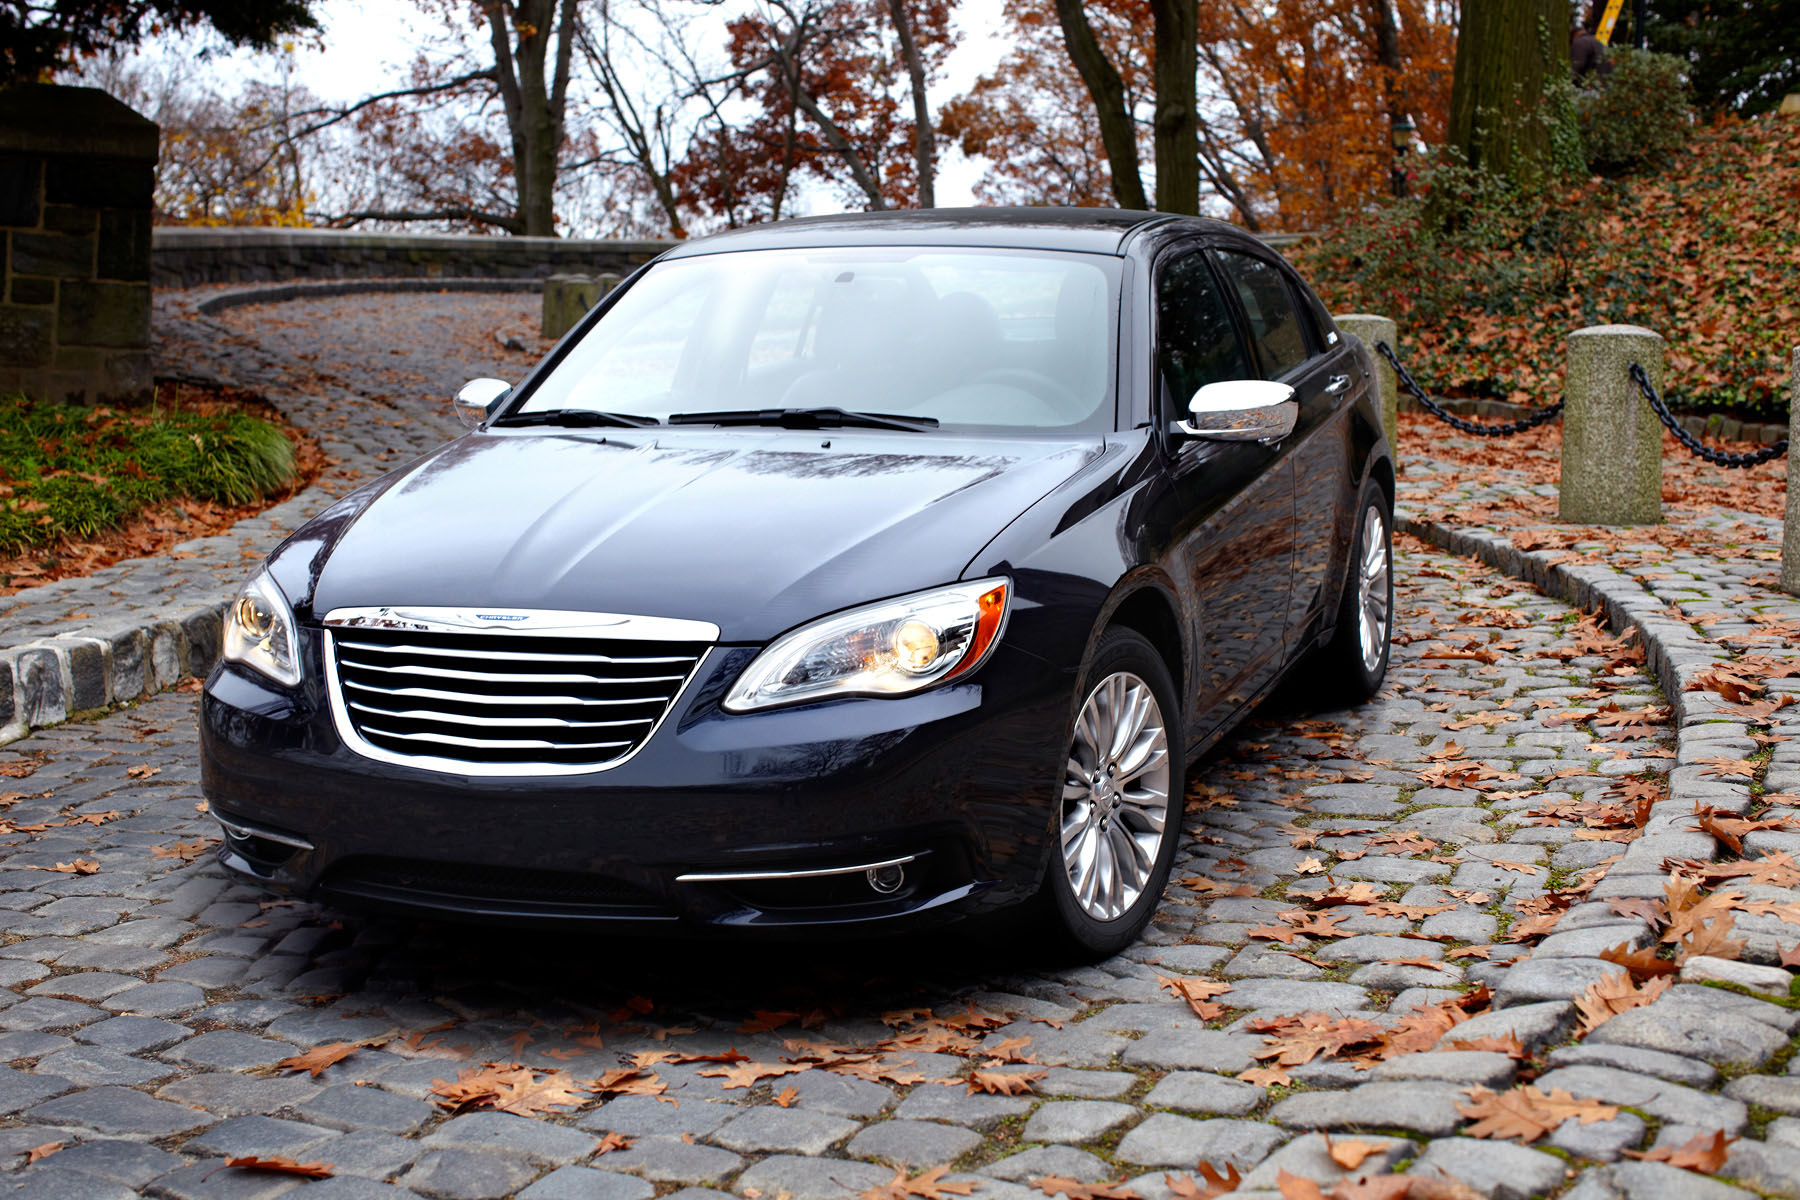 Photo of Chrysler 200 for Popular Mechanic.